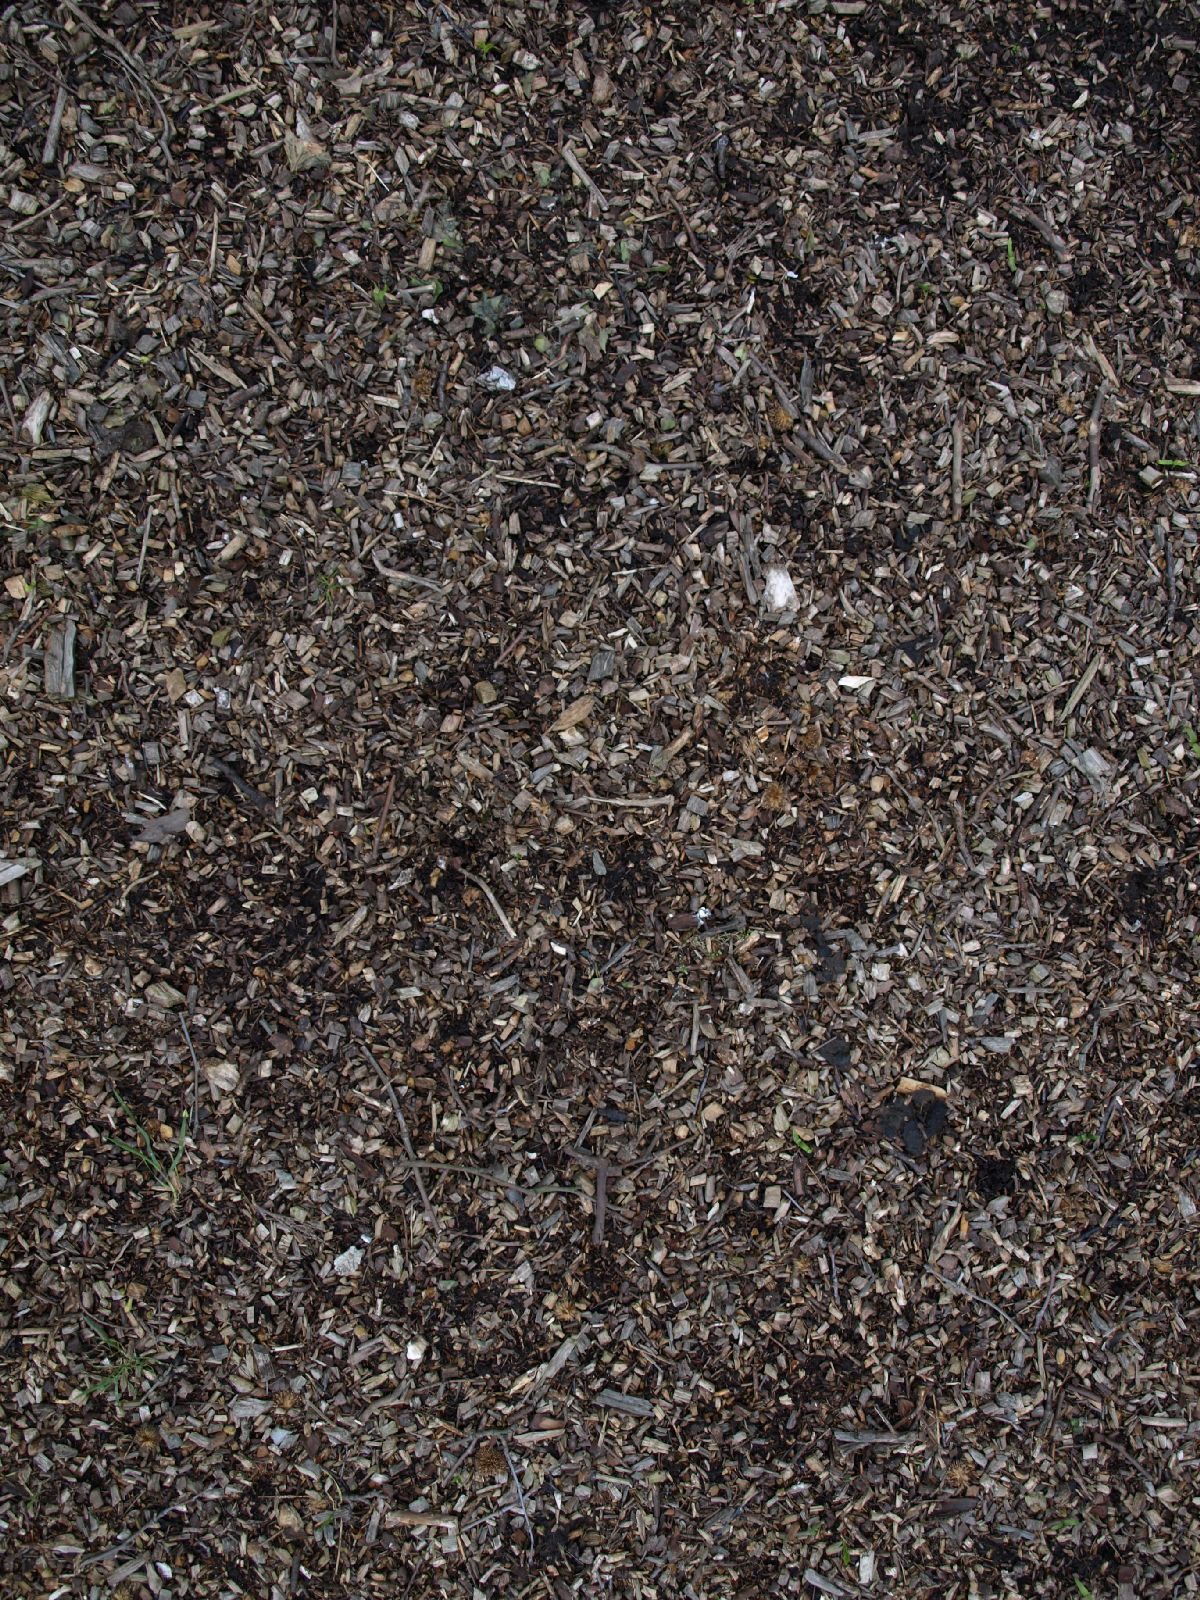 Ground-Nature_Texture_A_P4131169